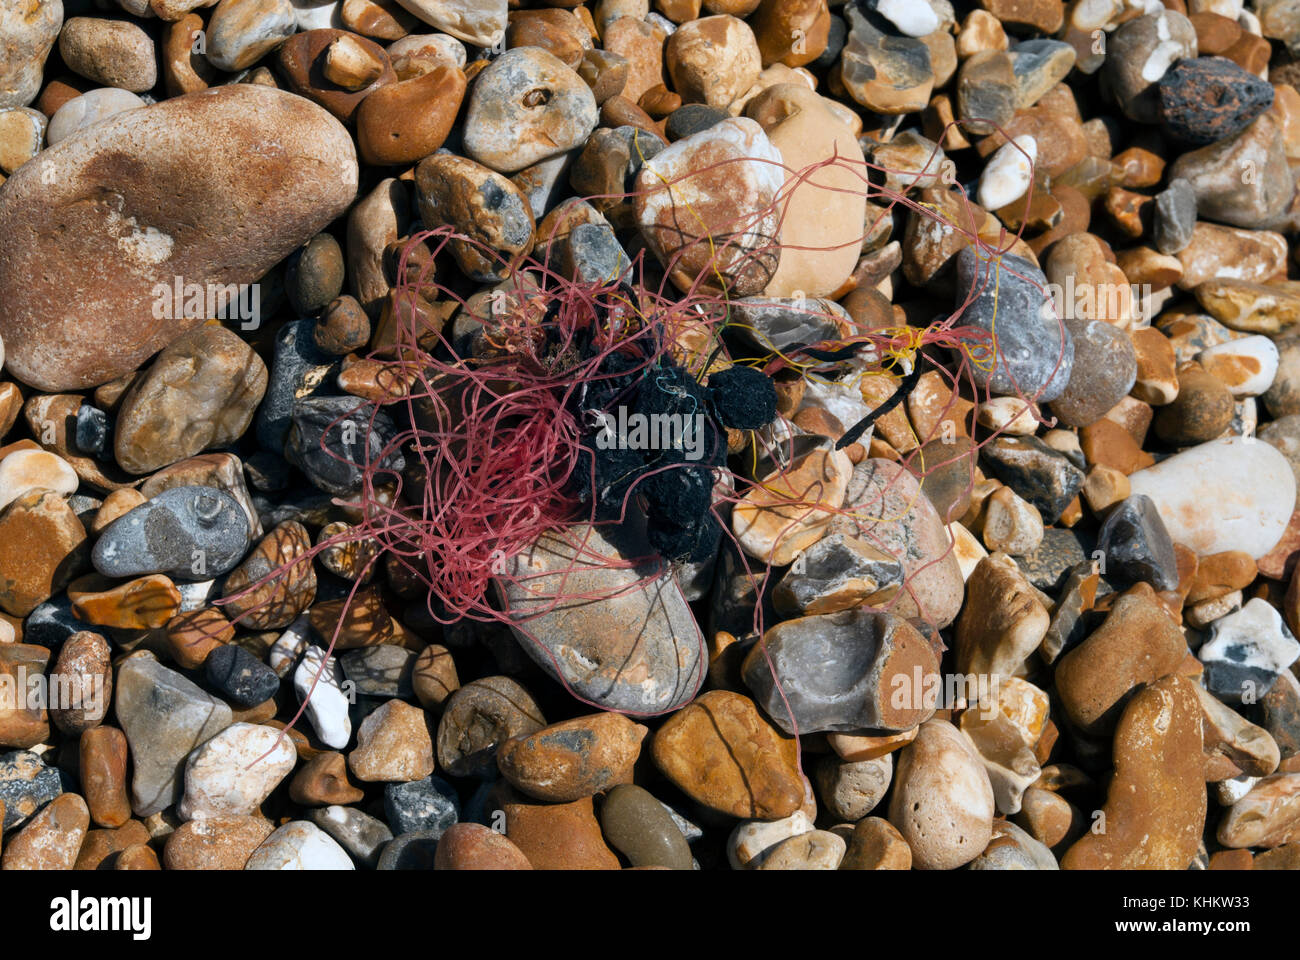 Washed up fishing line on the beach - Stock Image